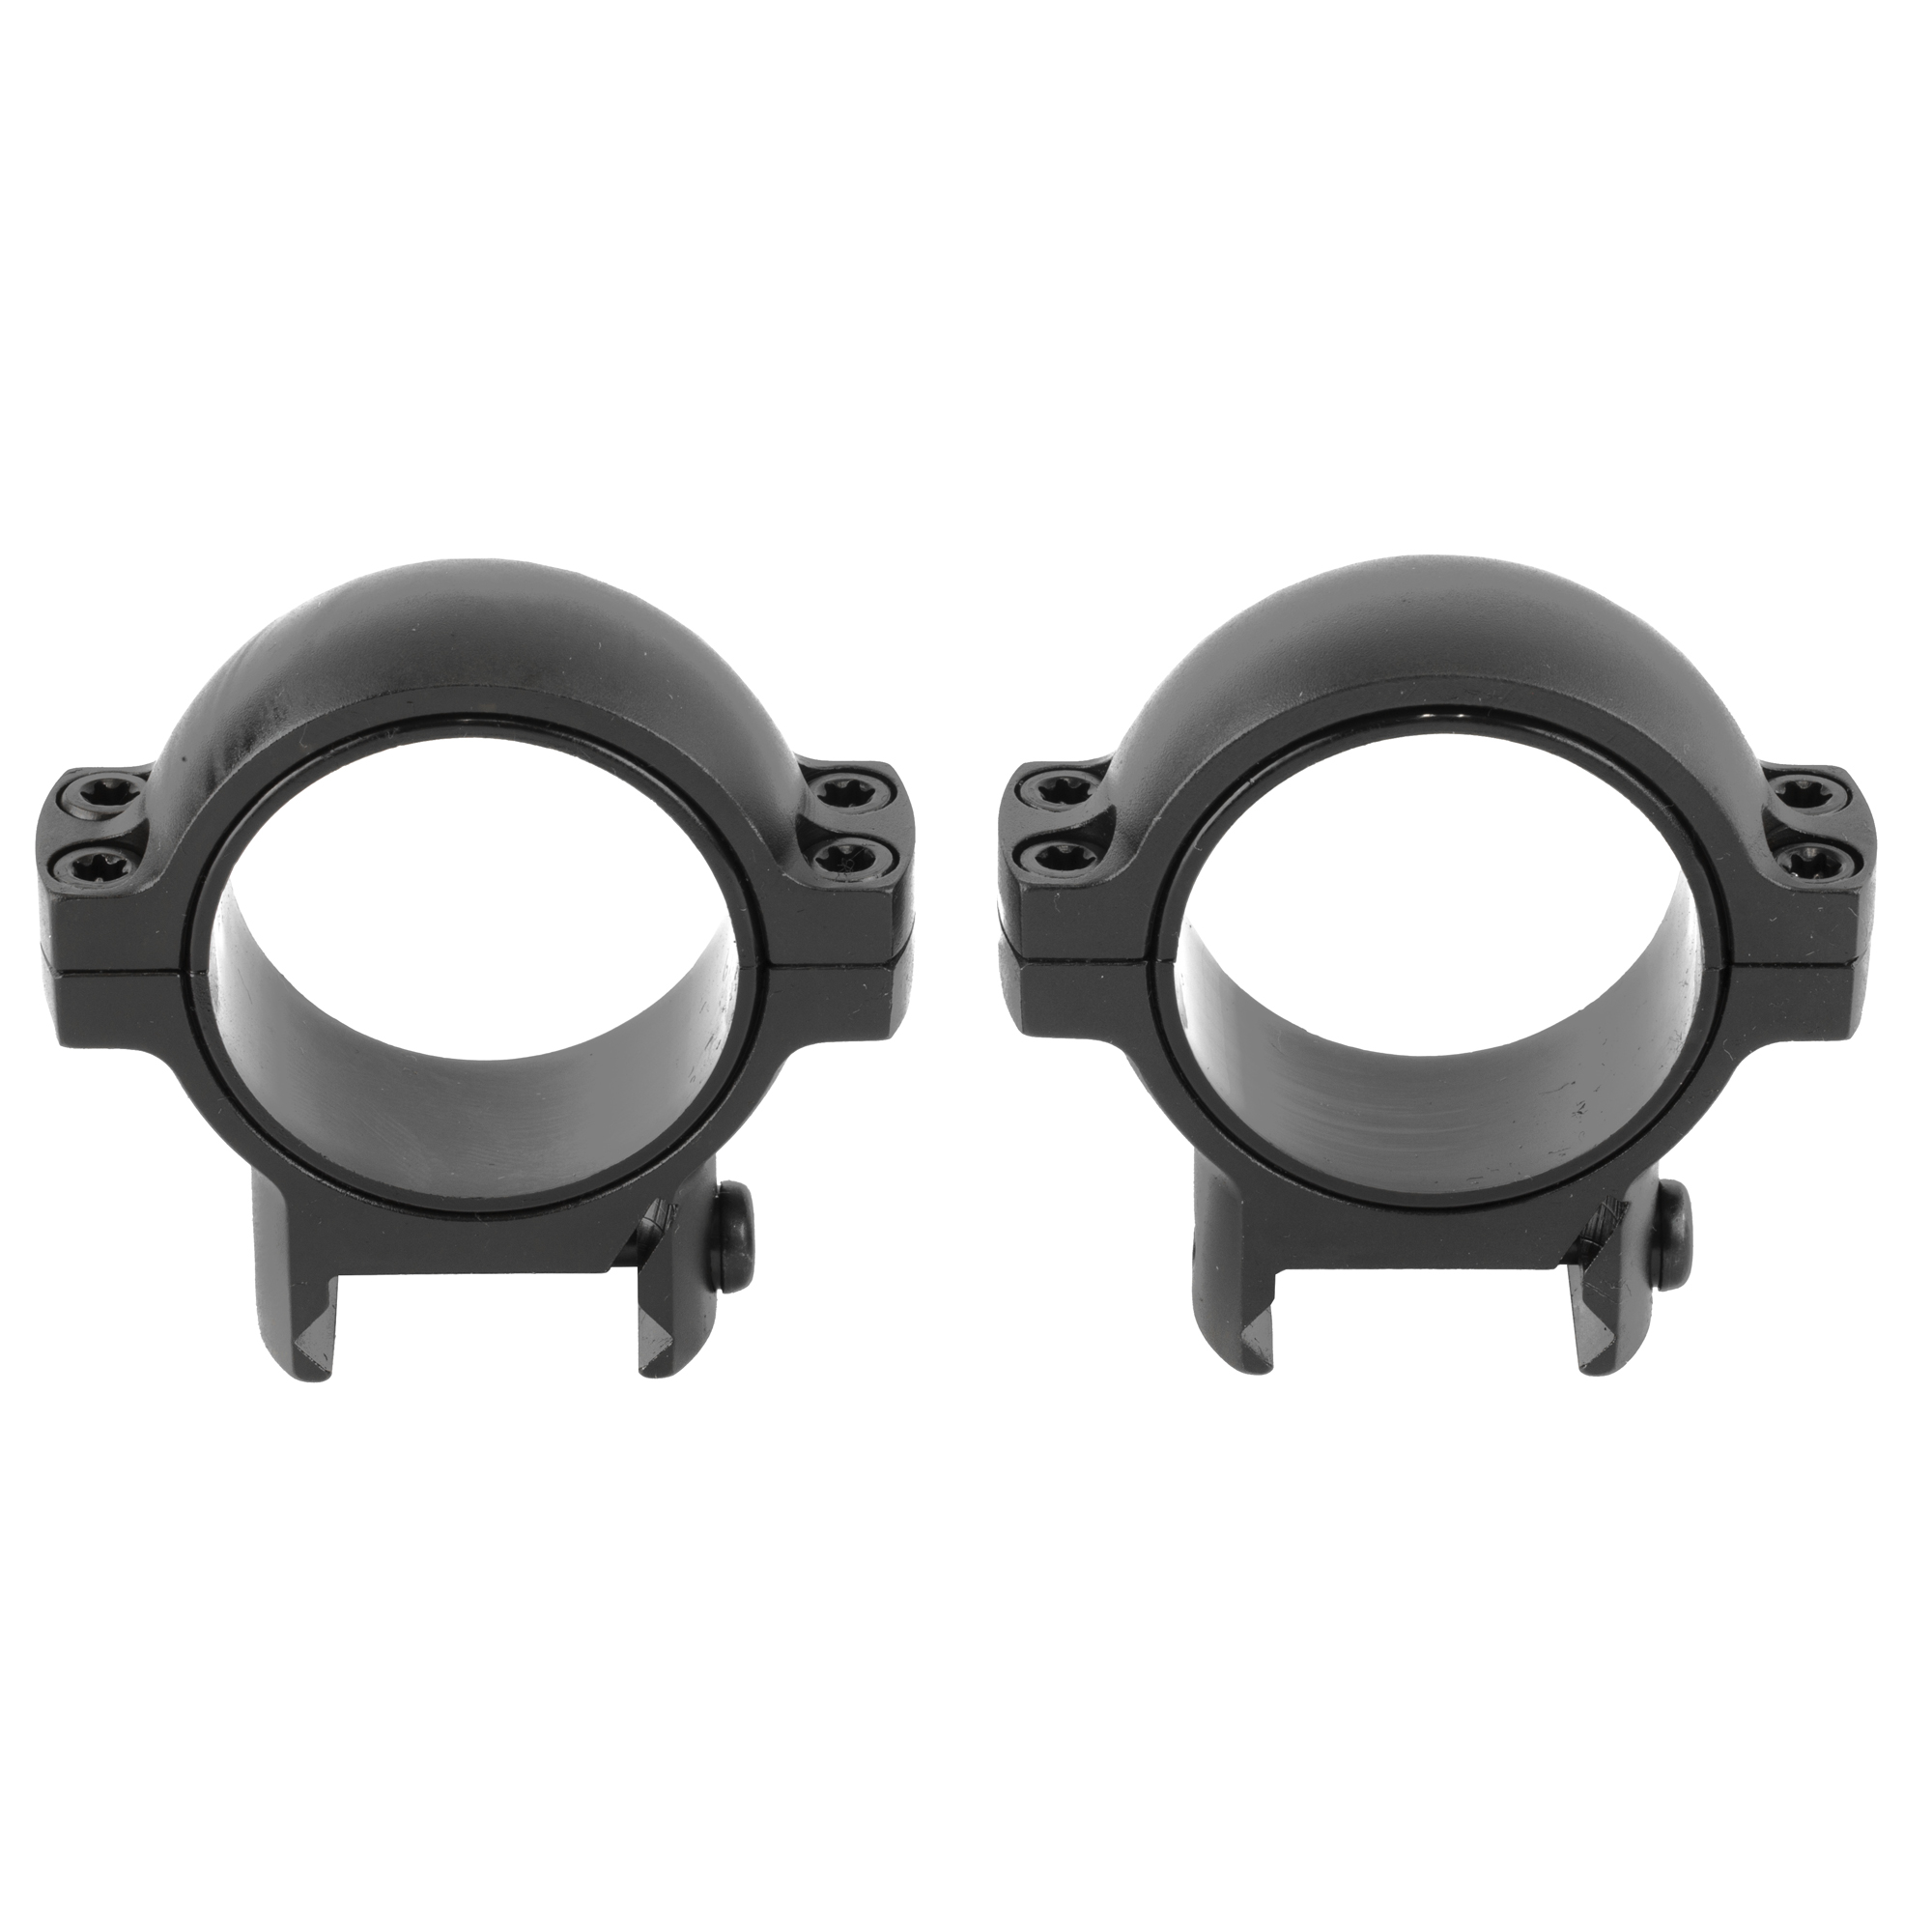 Burris Signature Rings set the industry standard for quality. They have a reputation for reliable performance in any weather or shooting circumstance.